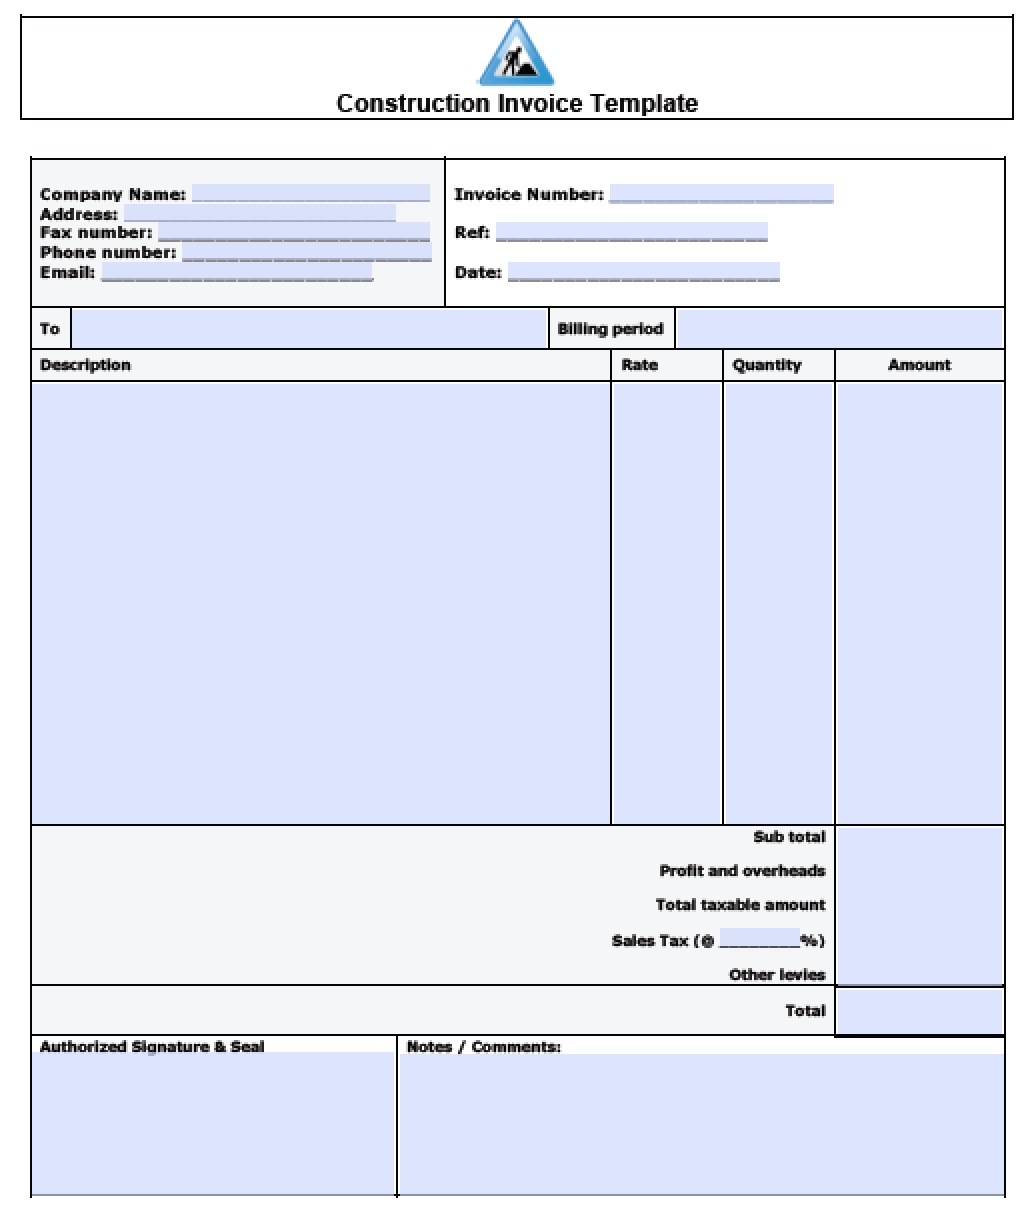 Free Construction Invoice Template Excel PDF Word Doc - How to write an invoice for consulting services